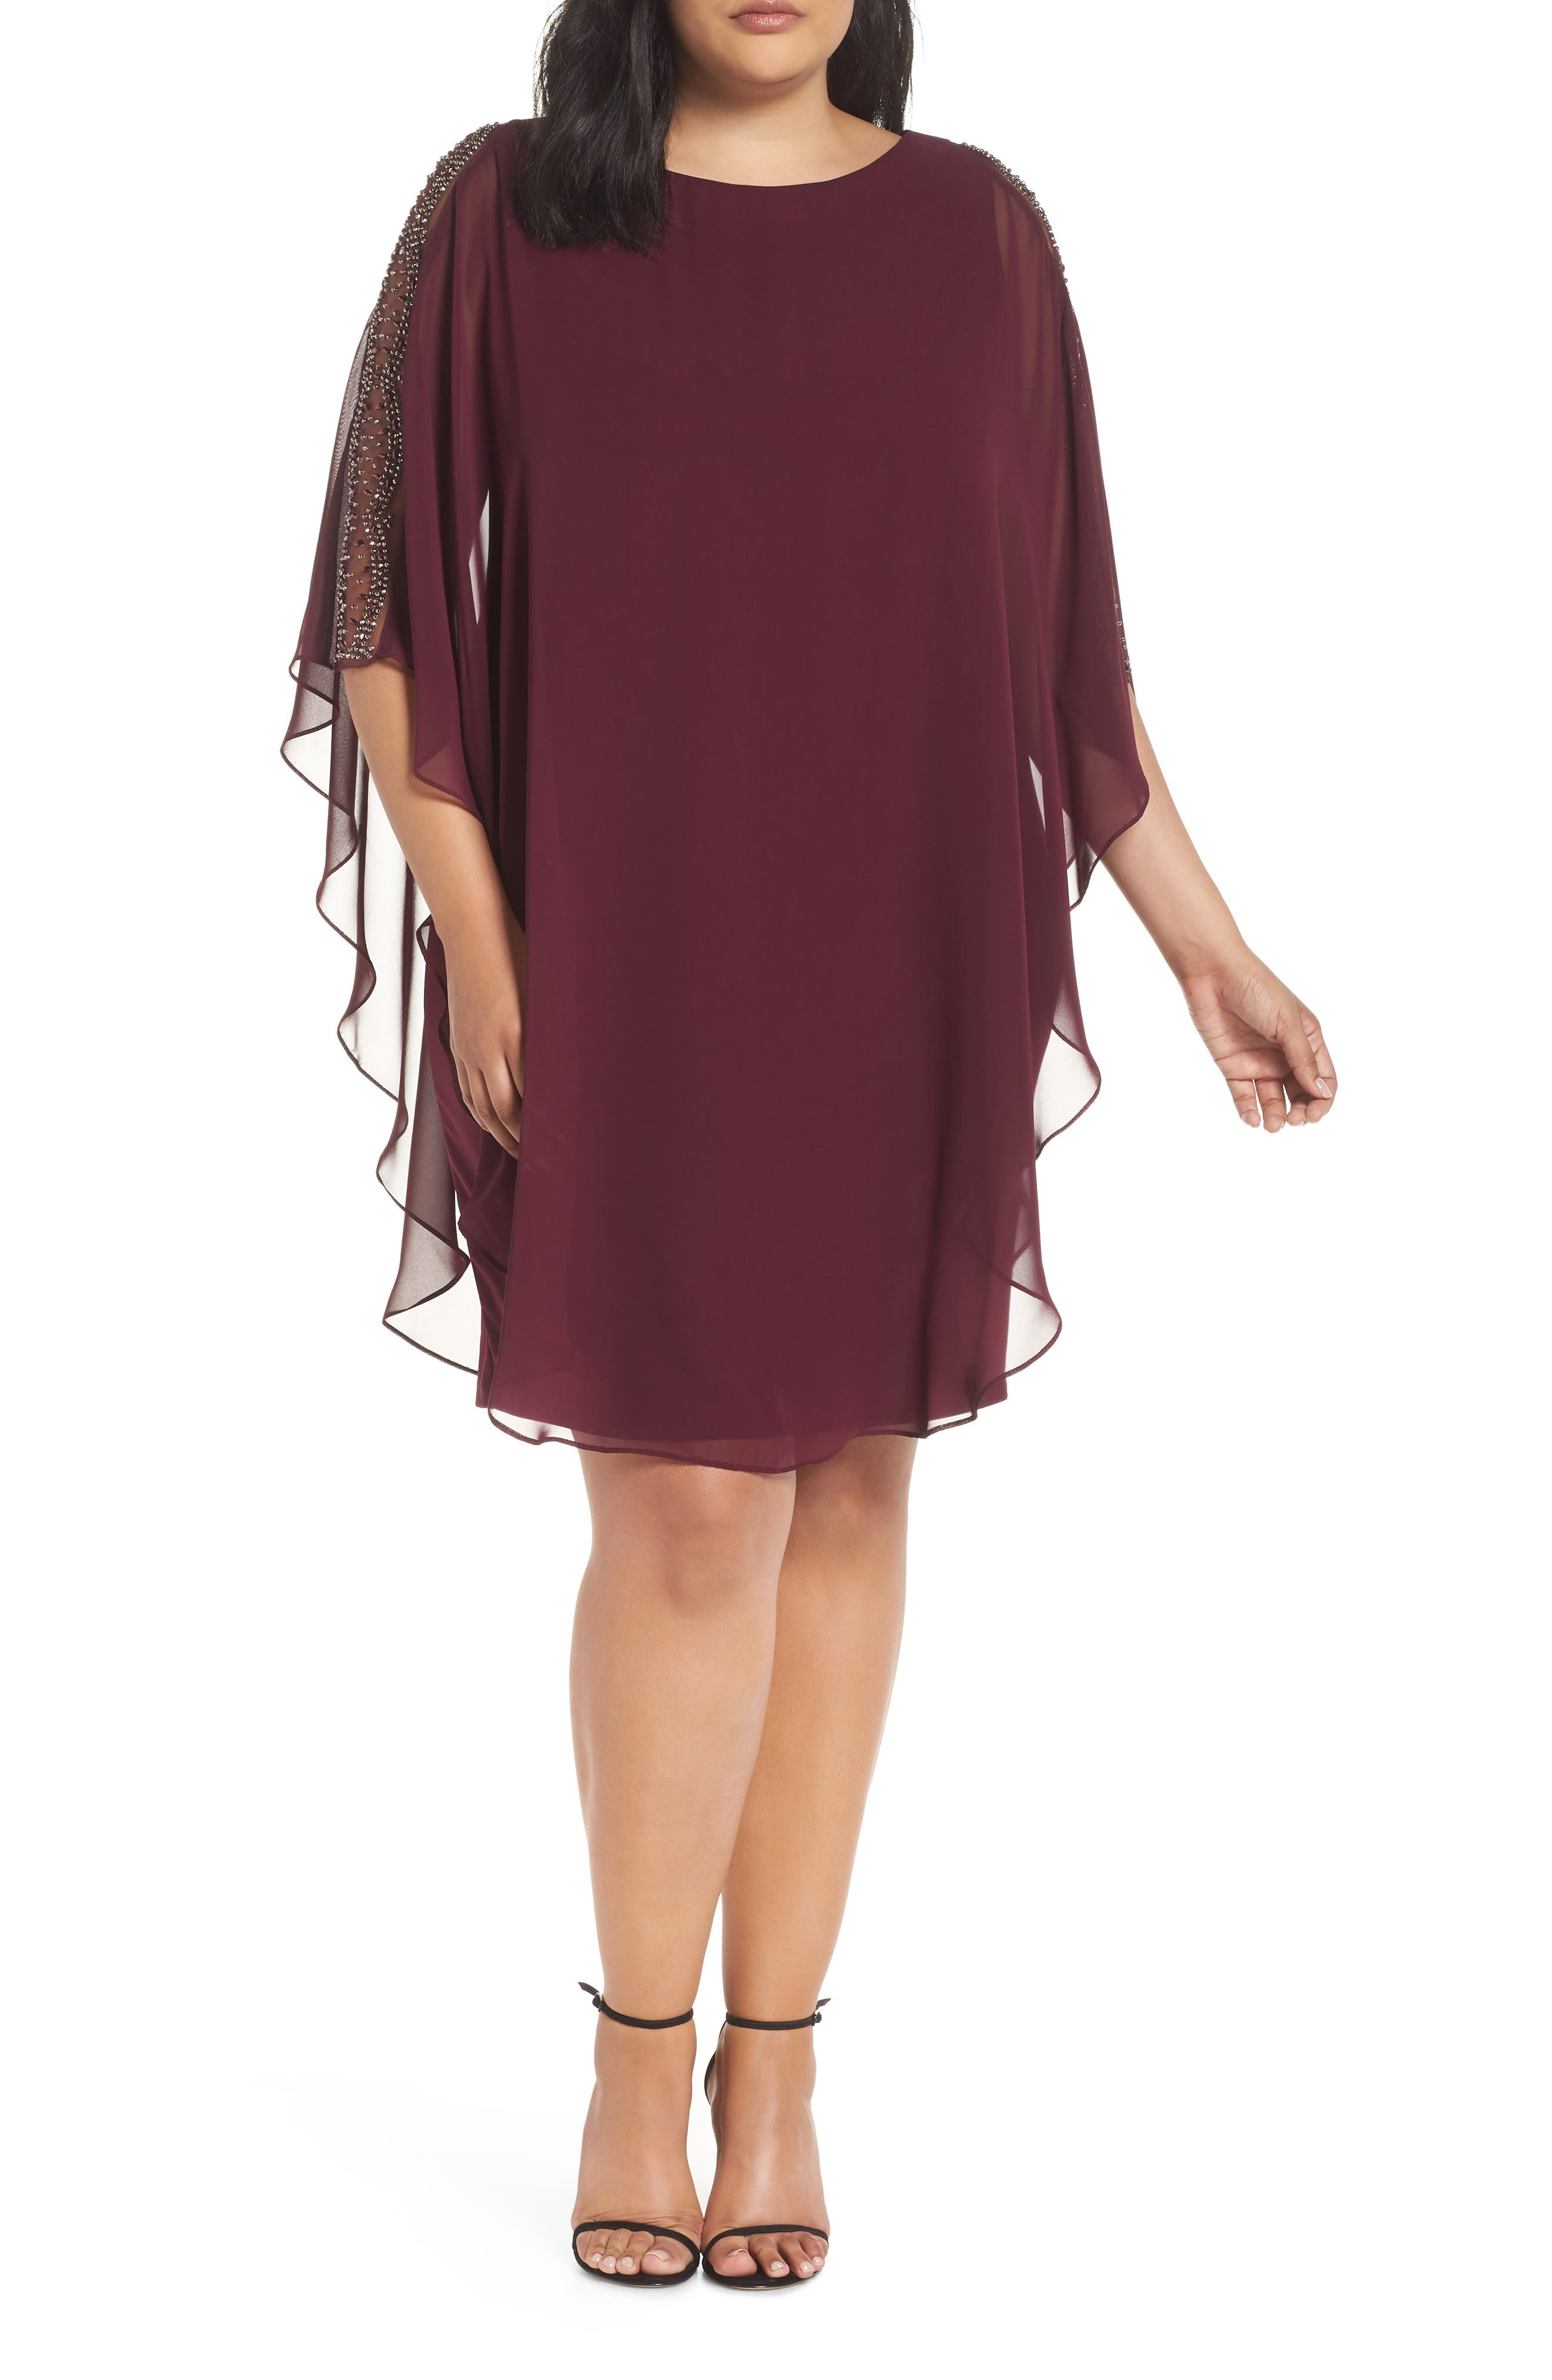 Plus Size Xscape Chiffon Overlay Beaded Sleeve Cocktail Dress, Red